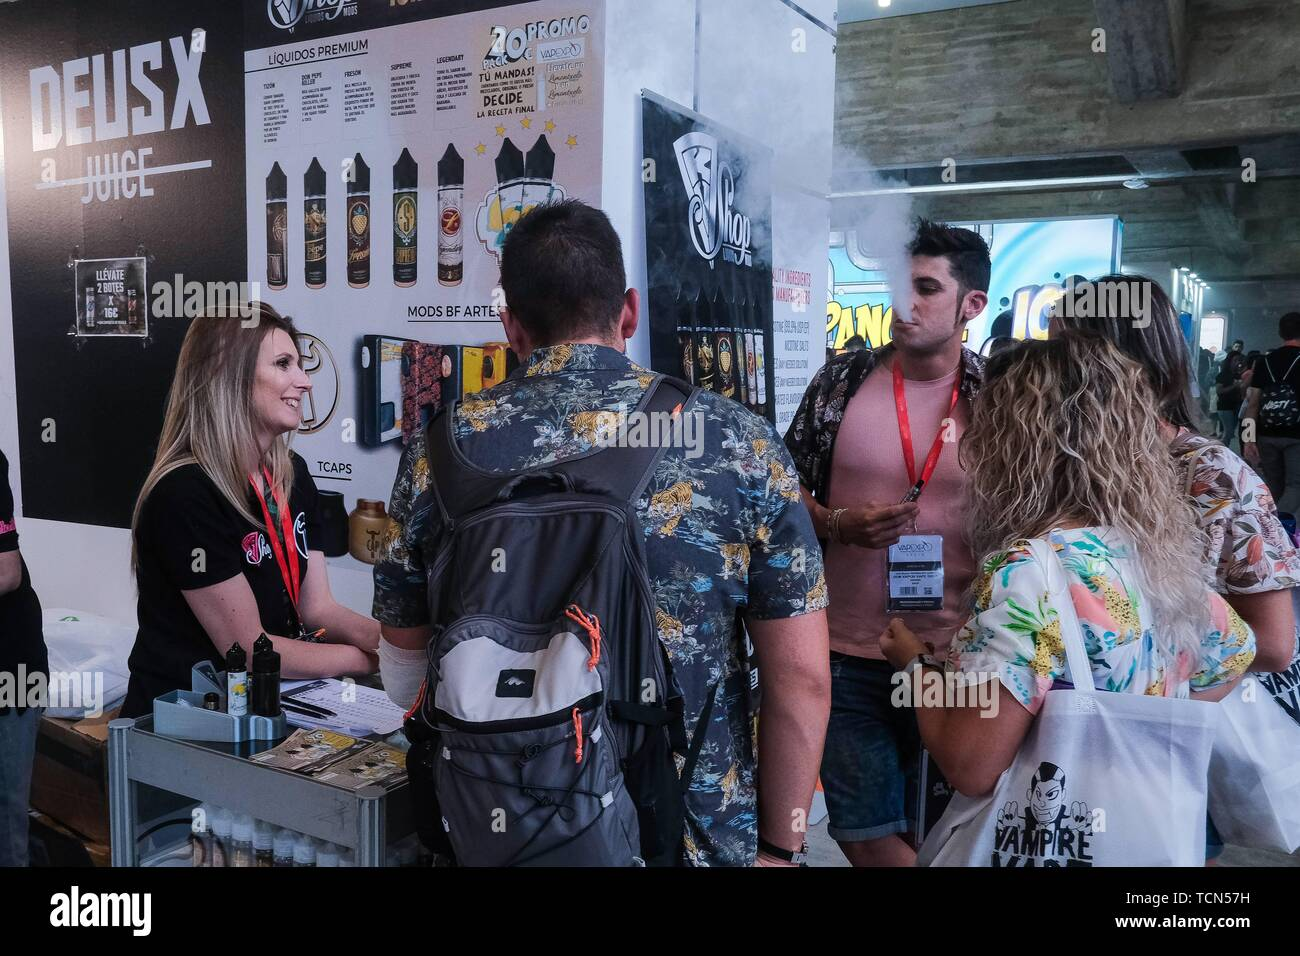 Madrid, Spain. 09th June, 2019. International vaping fair, electronic cigarette in which we have seen the best brands, resistances, mechanical mods, Personal Advanced Vaporizer, liquids with a thousand flavors, atomizers and much, much smoke. Madrid Spain. Credit: CORDON PRESS/Alamy Live News - Stock Image